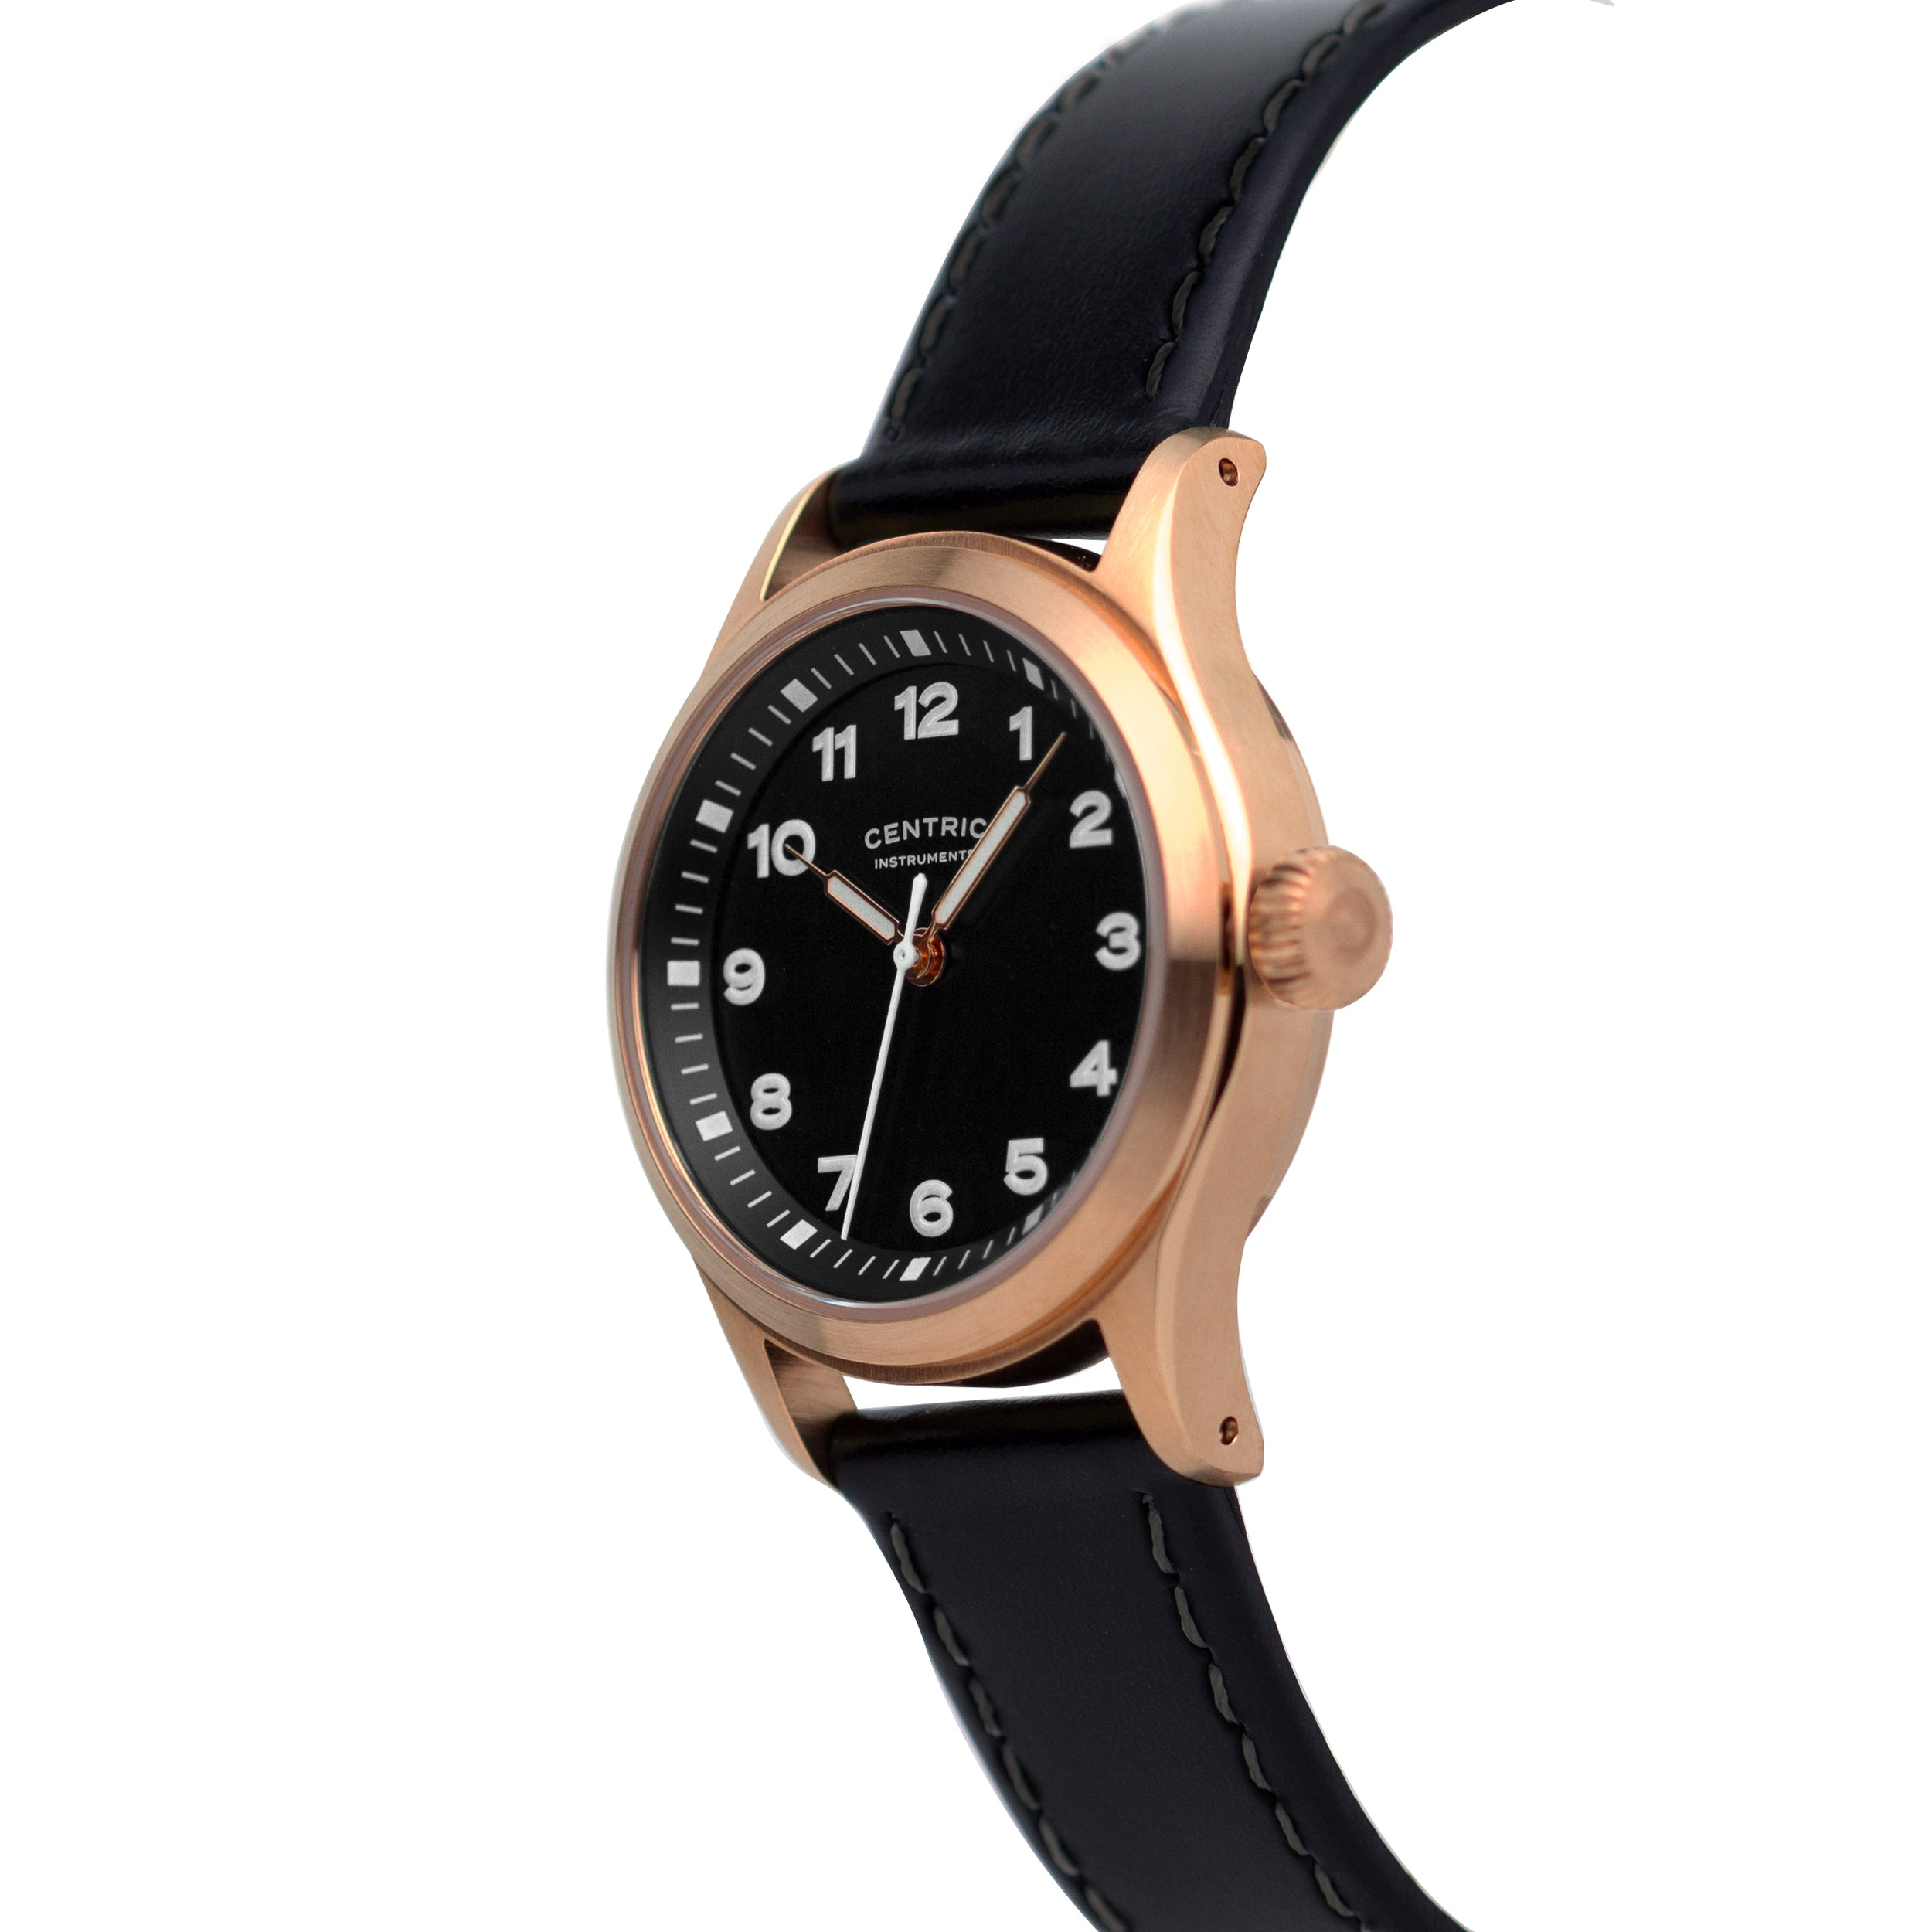 Field Watch MkIII (Rose Gold / Black)